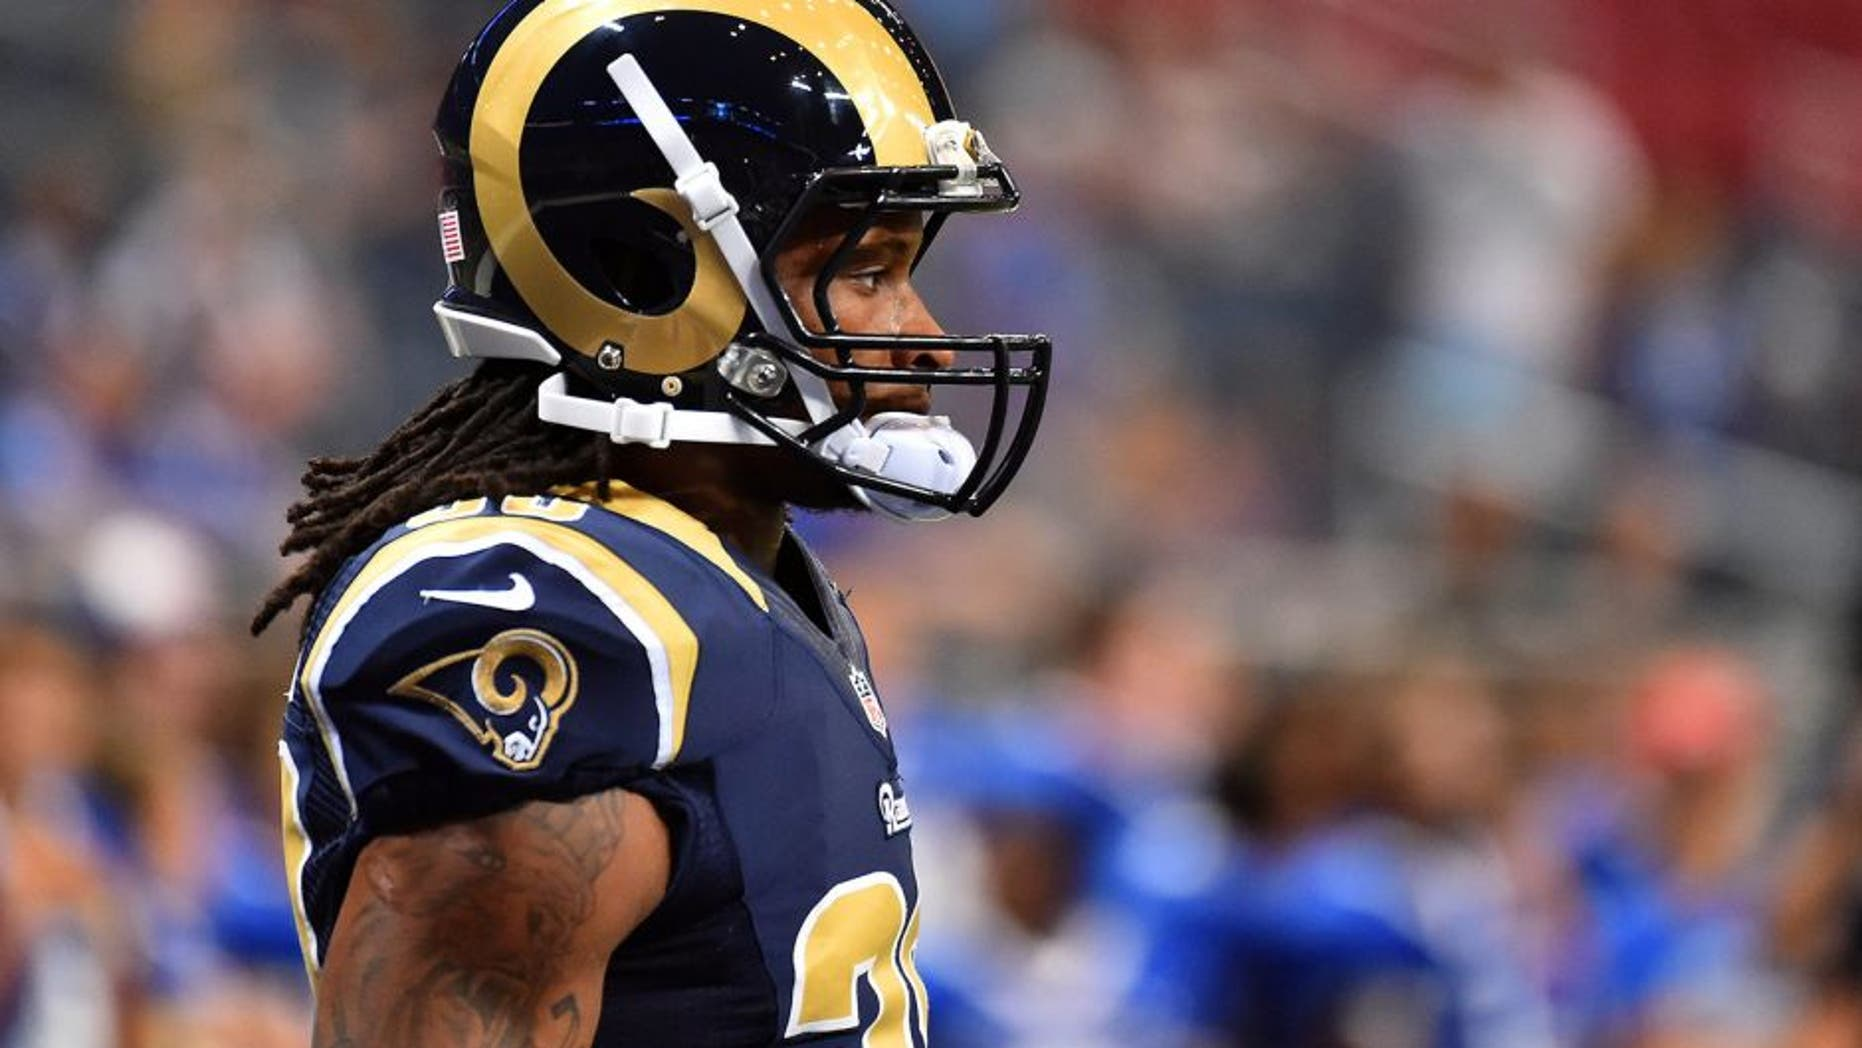 Aug 29, 2015; St. Louis, MO, USA; St. Louis Rams running back Todd Gurley (30) during warmups before the game between the St. Louis Rams and the Indianapolis Colts at the Edward Jones Dome. Mandatory Credit: Jasen Vinlove-USA TODAY Sports